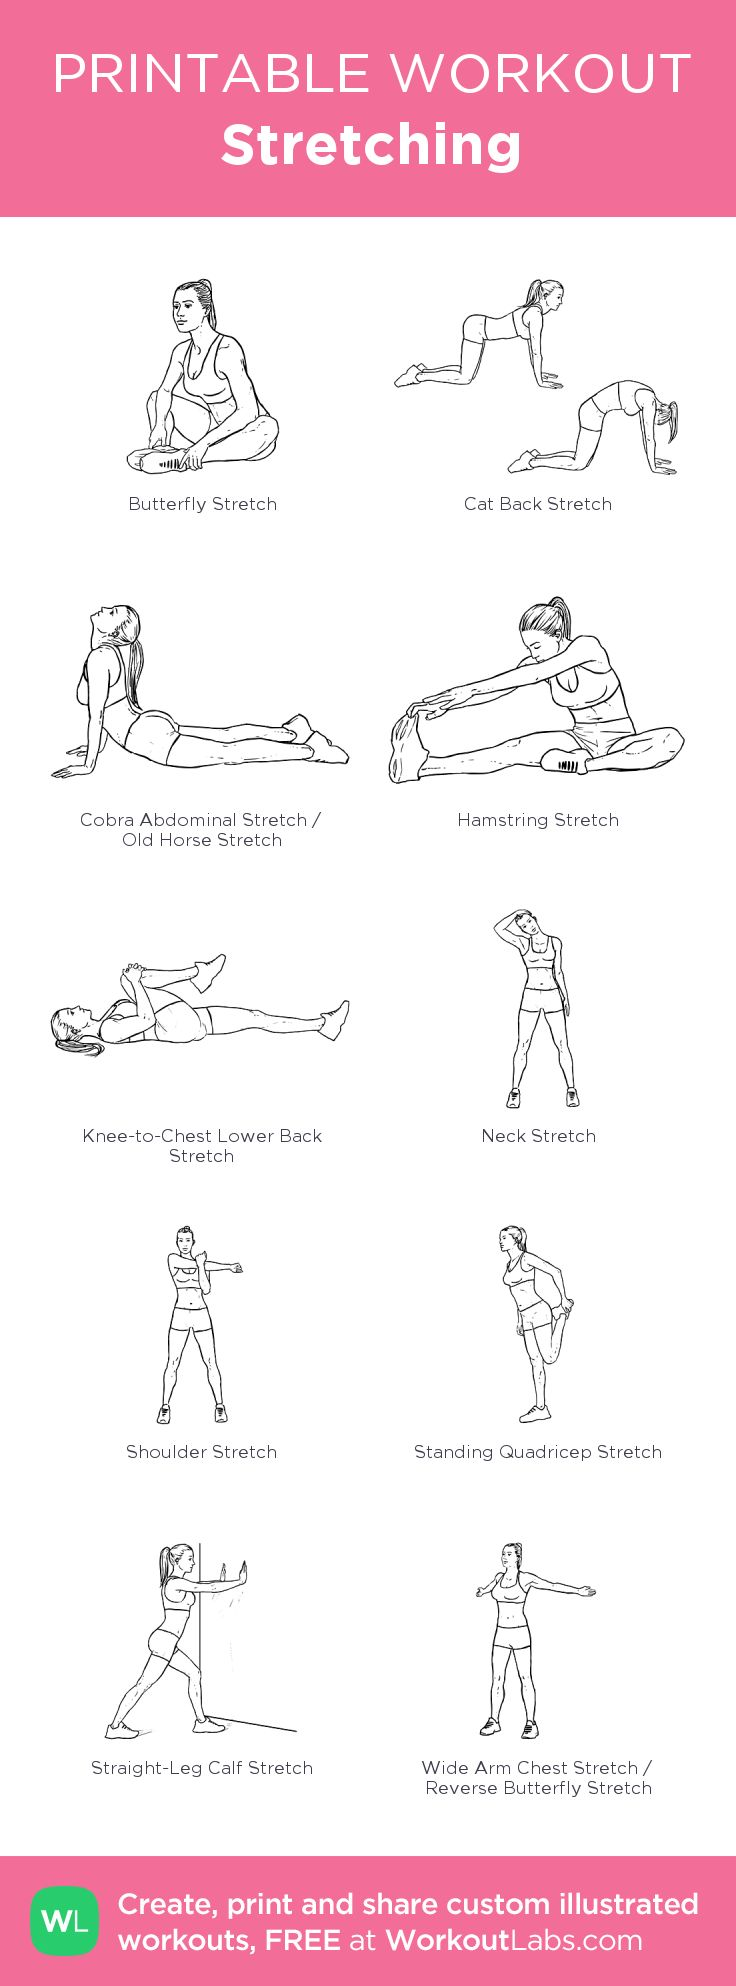 Stretching : my visual workout created at WorkoutLabs.com • Click through to customize and download as a FREE PDF! #customworkout